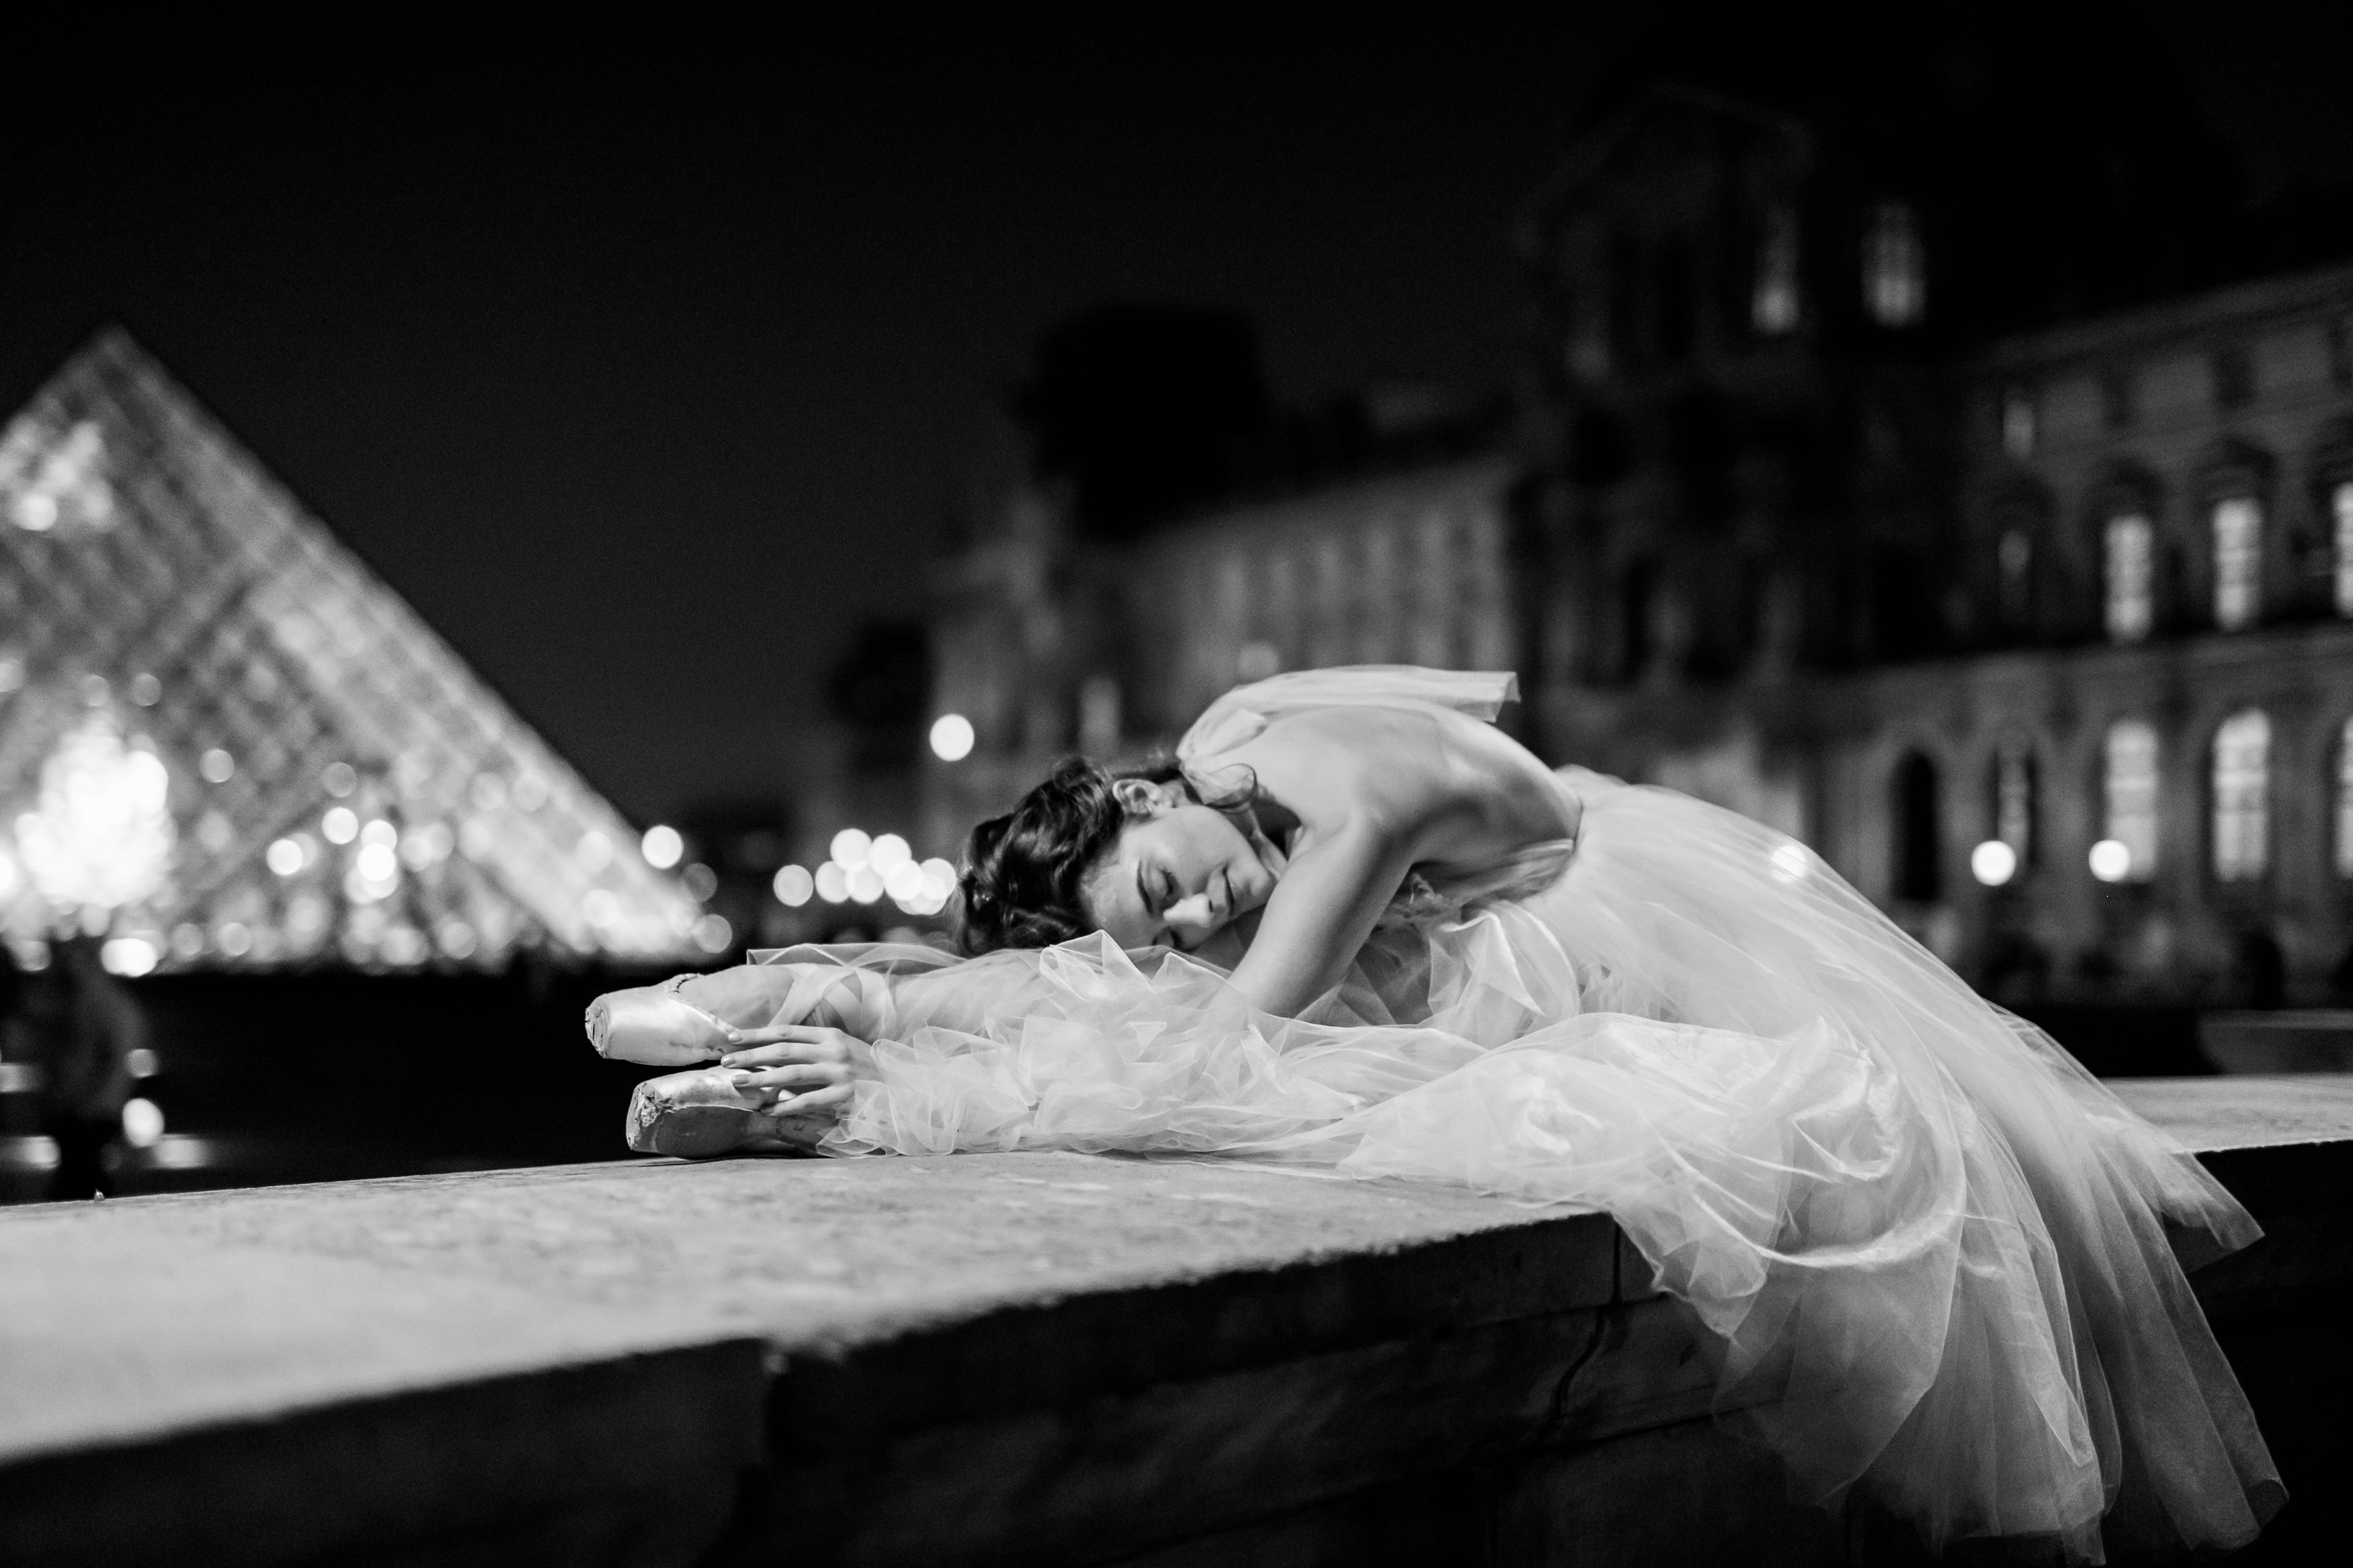 What to Watch: This Nostalgic New Ballet Film Is a Glamorous Look at Paris at Night